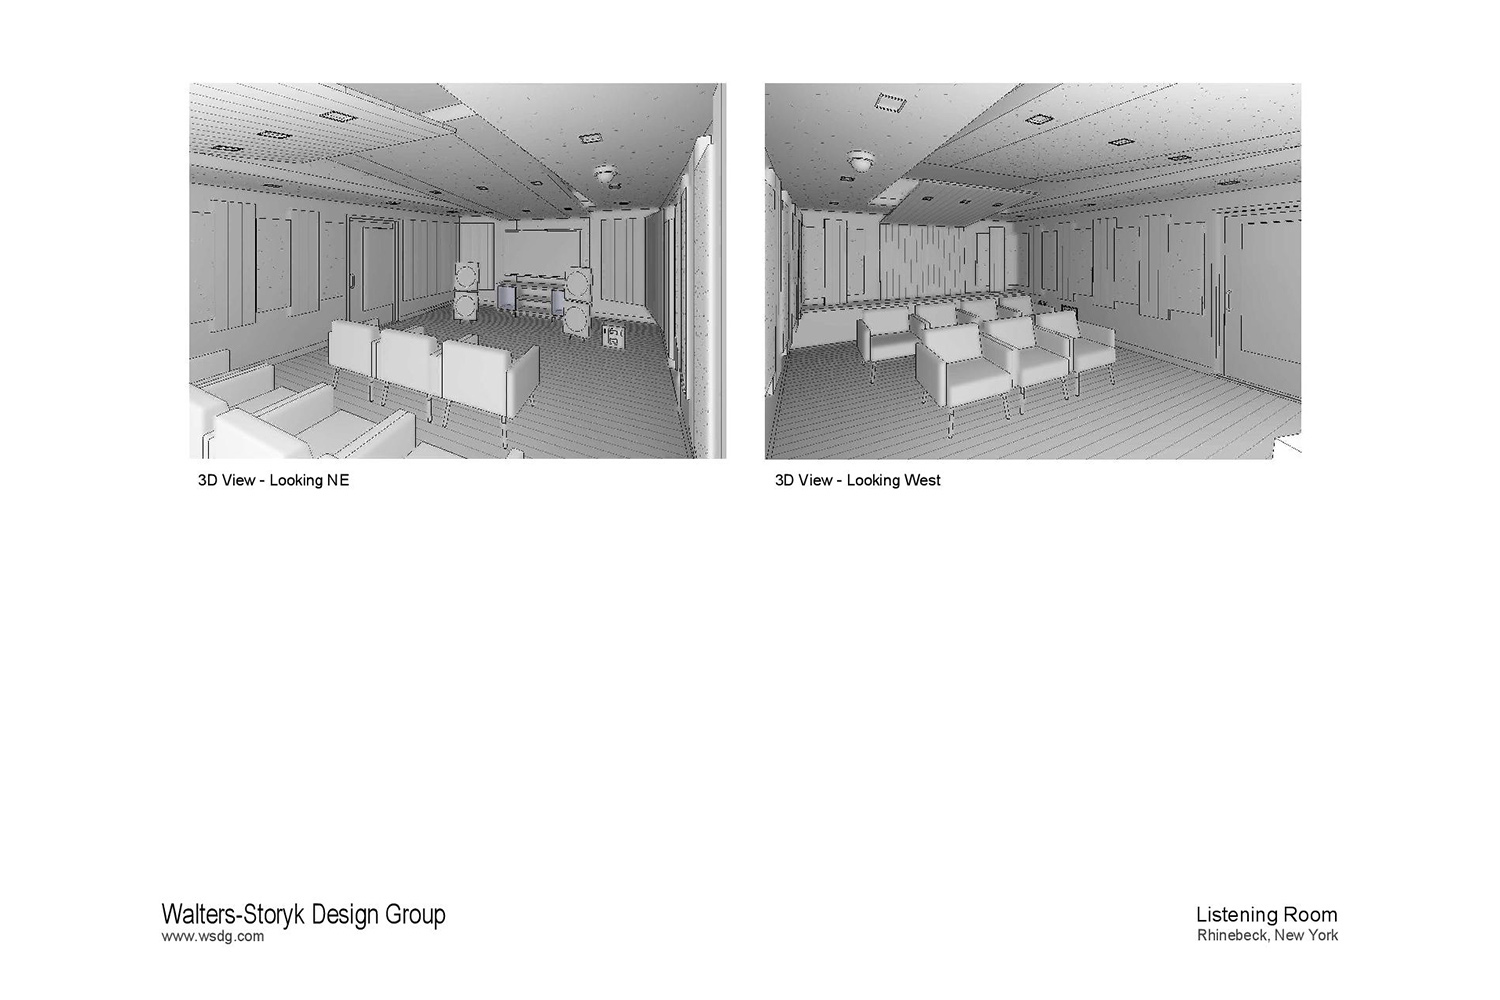 Luxury minimalistic audiophile listening room in a private residence in upstate New York. Acoustic isolation and A/V Systems design by WSDG. Renders.